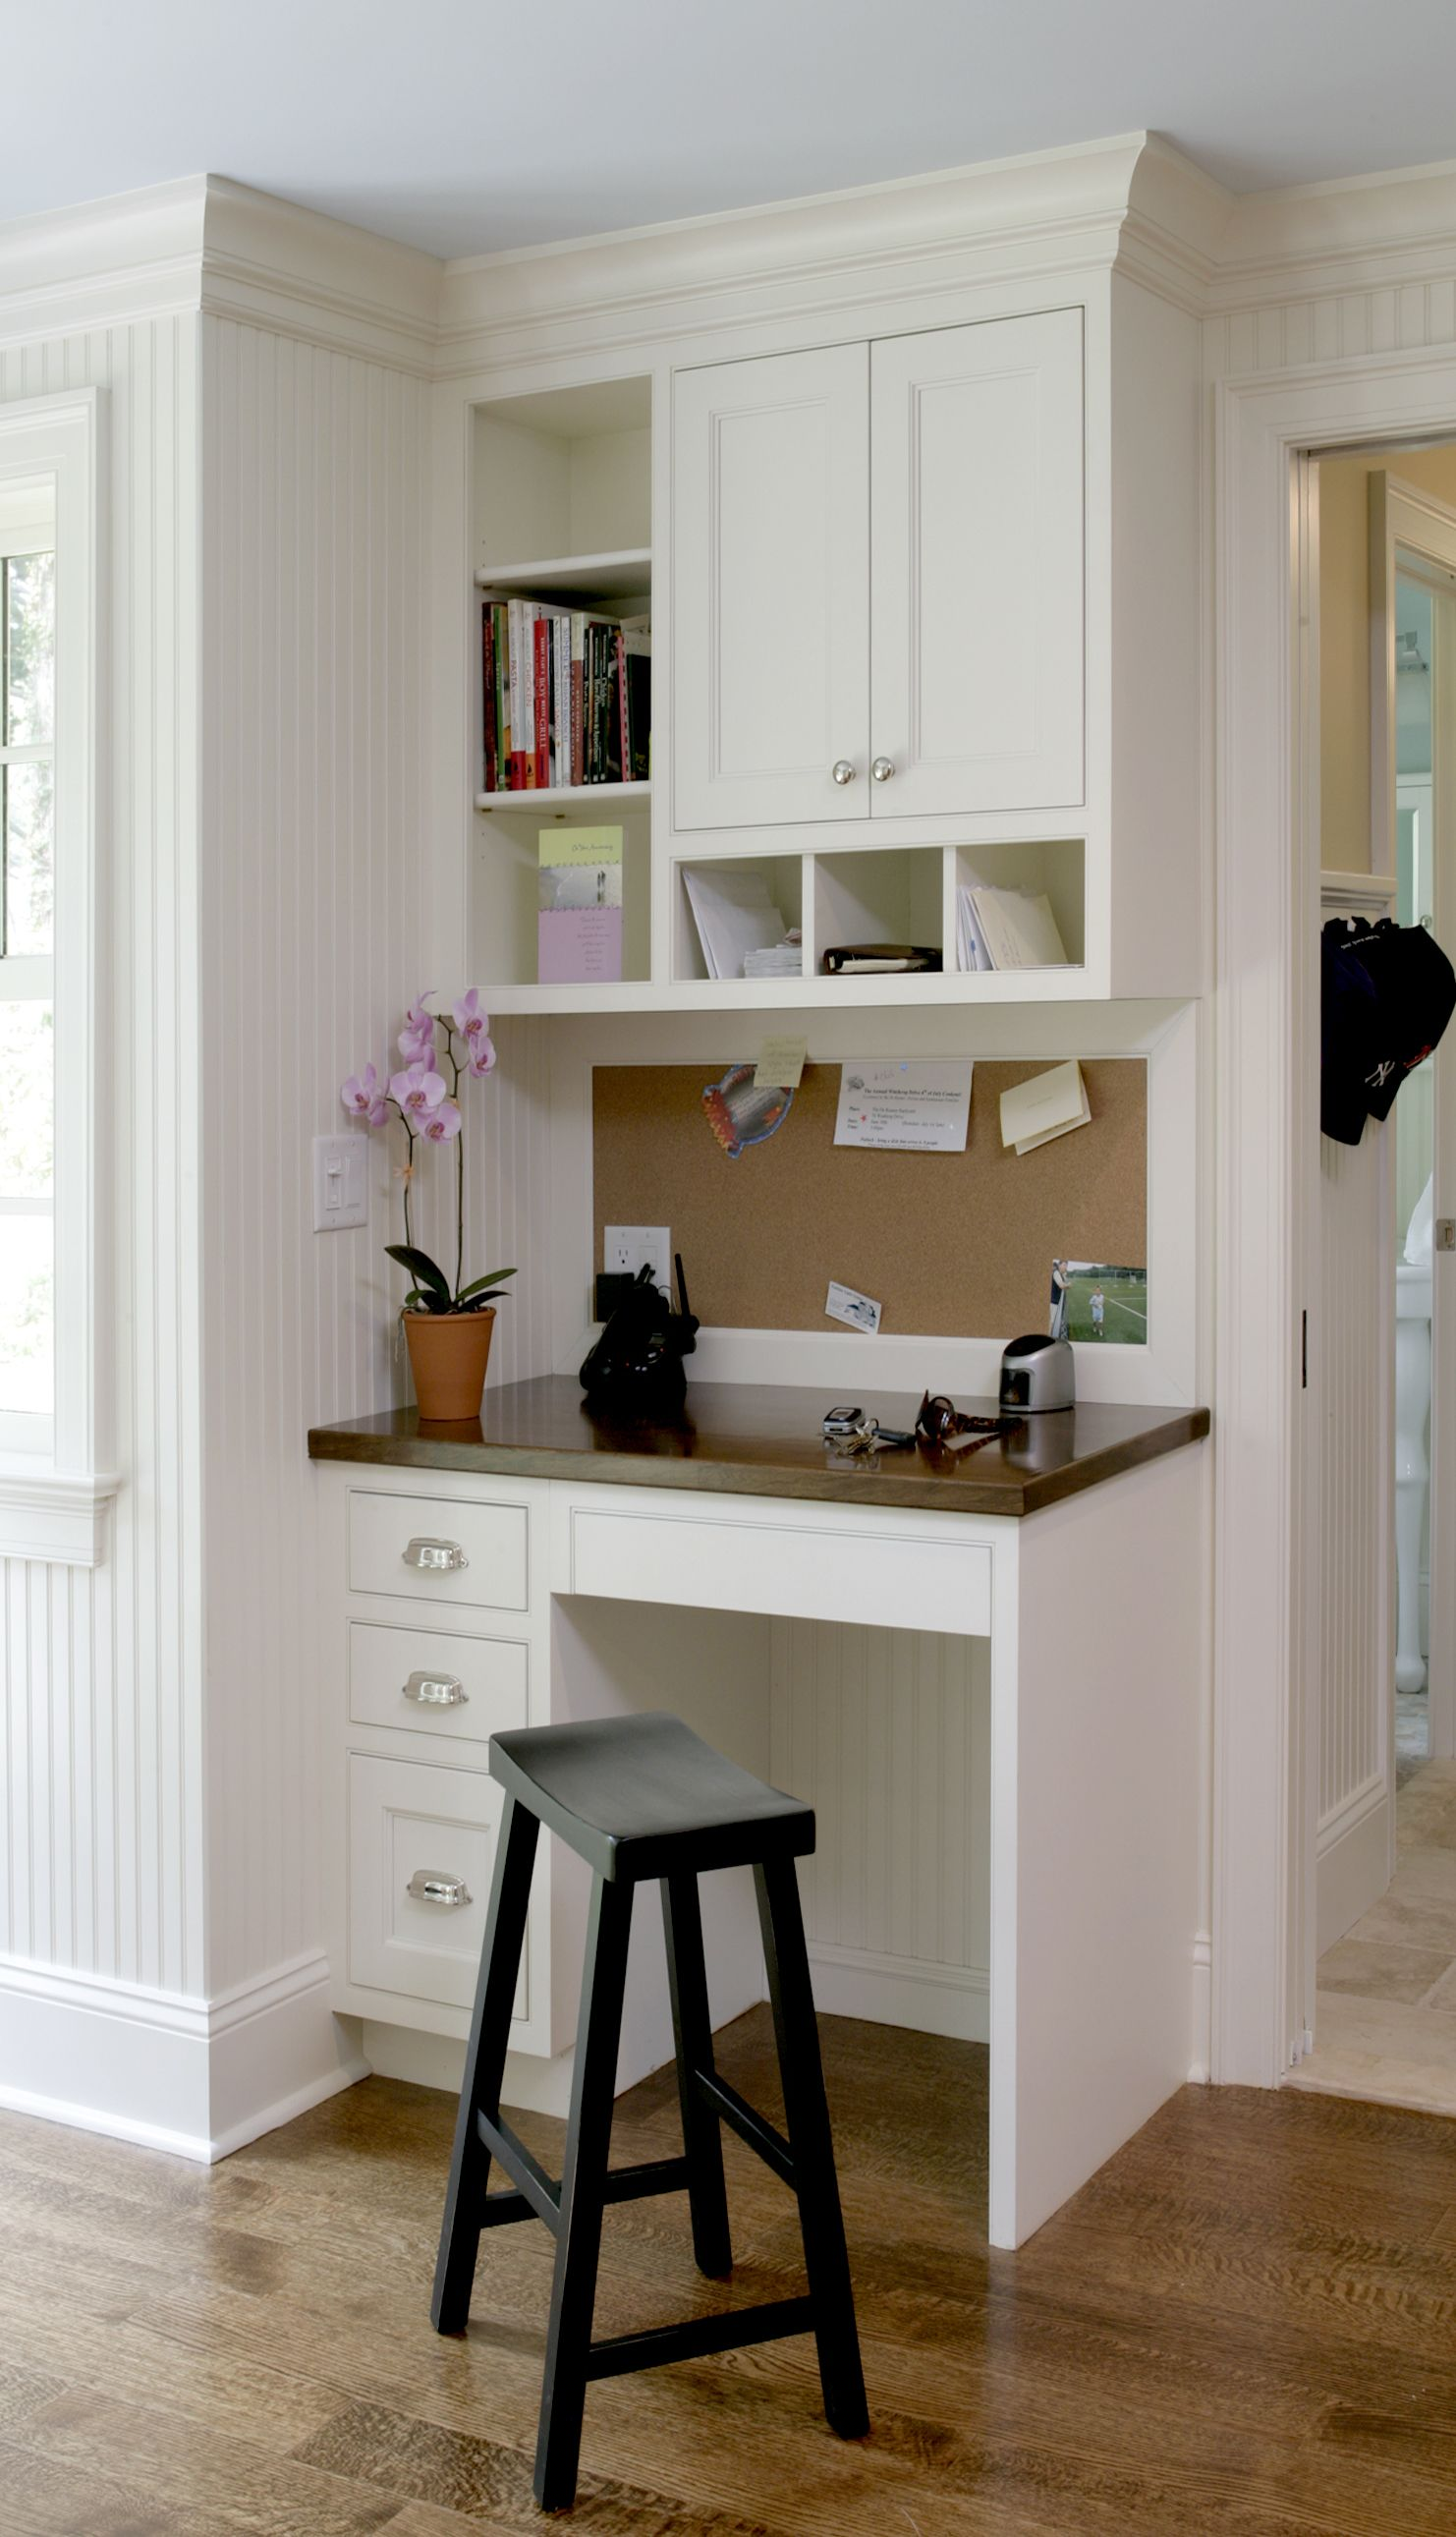 Best Custom Wood Products Homeoffice Custom Cabinets 400 x 300